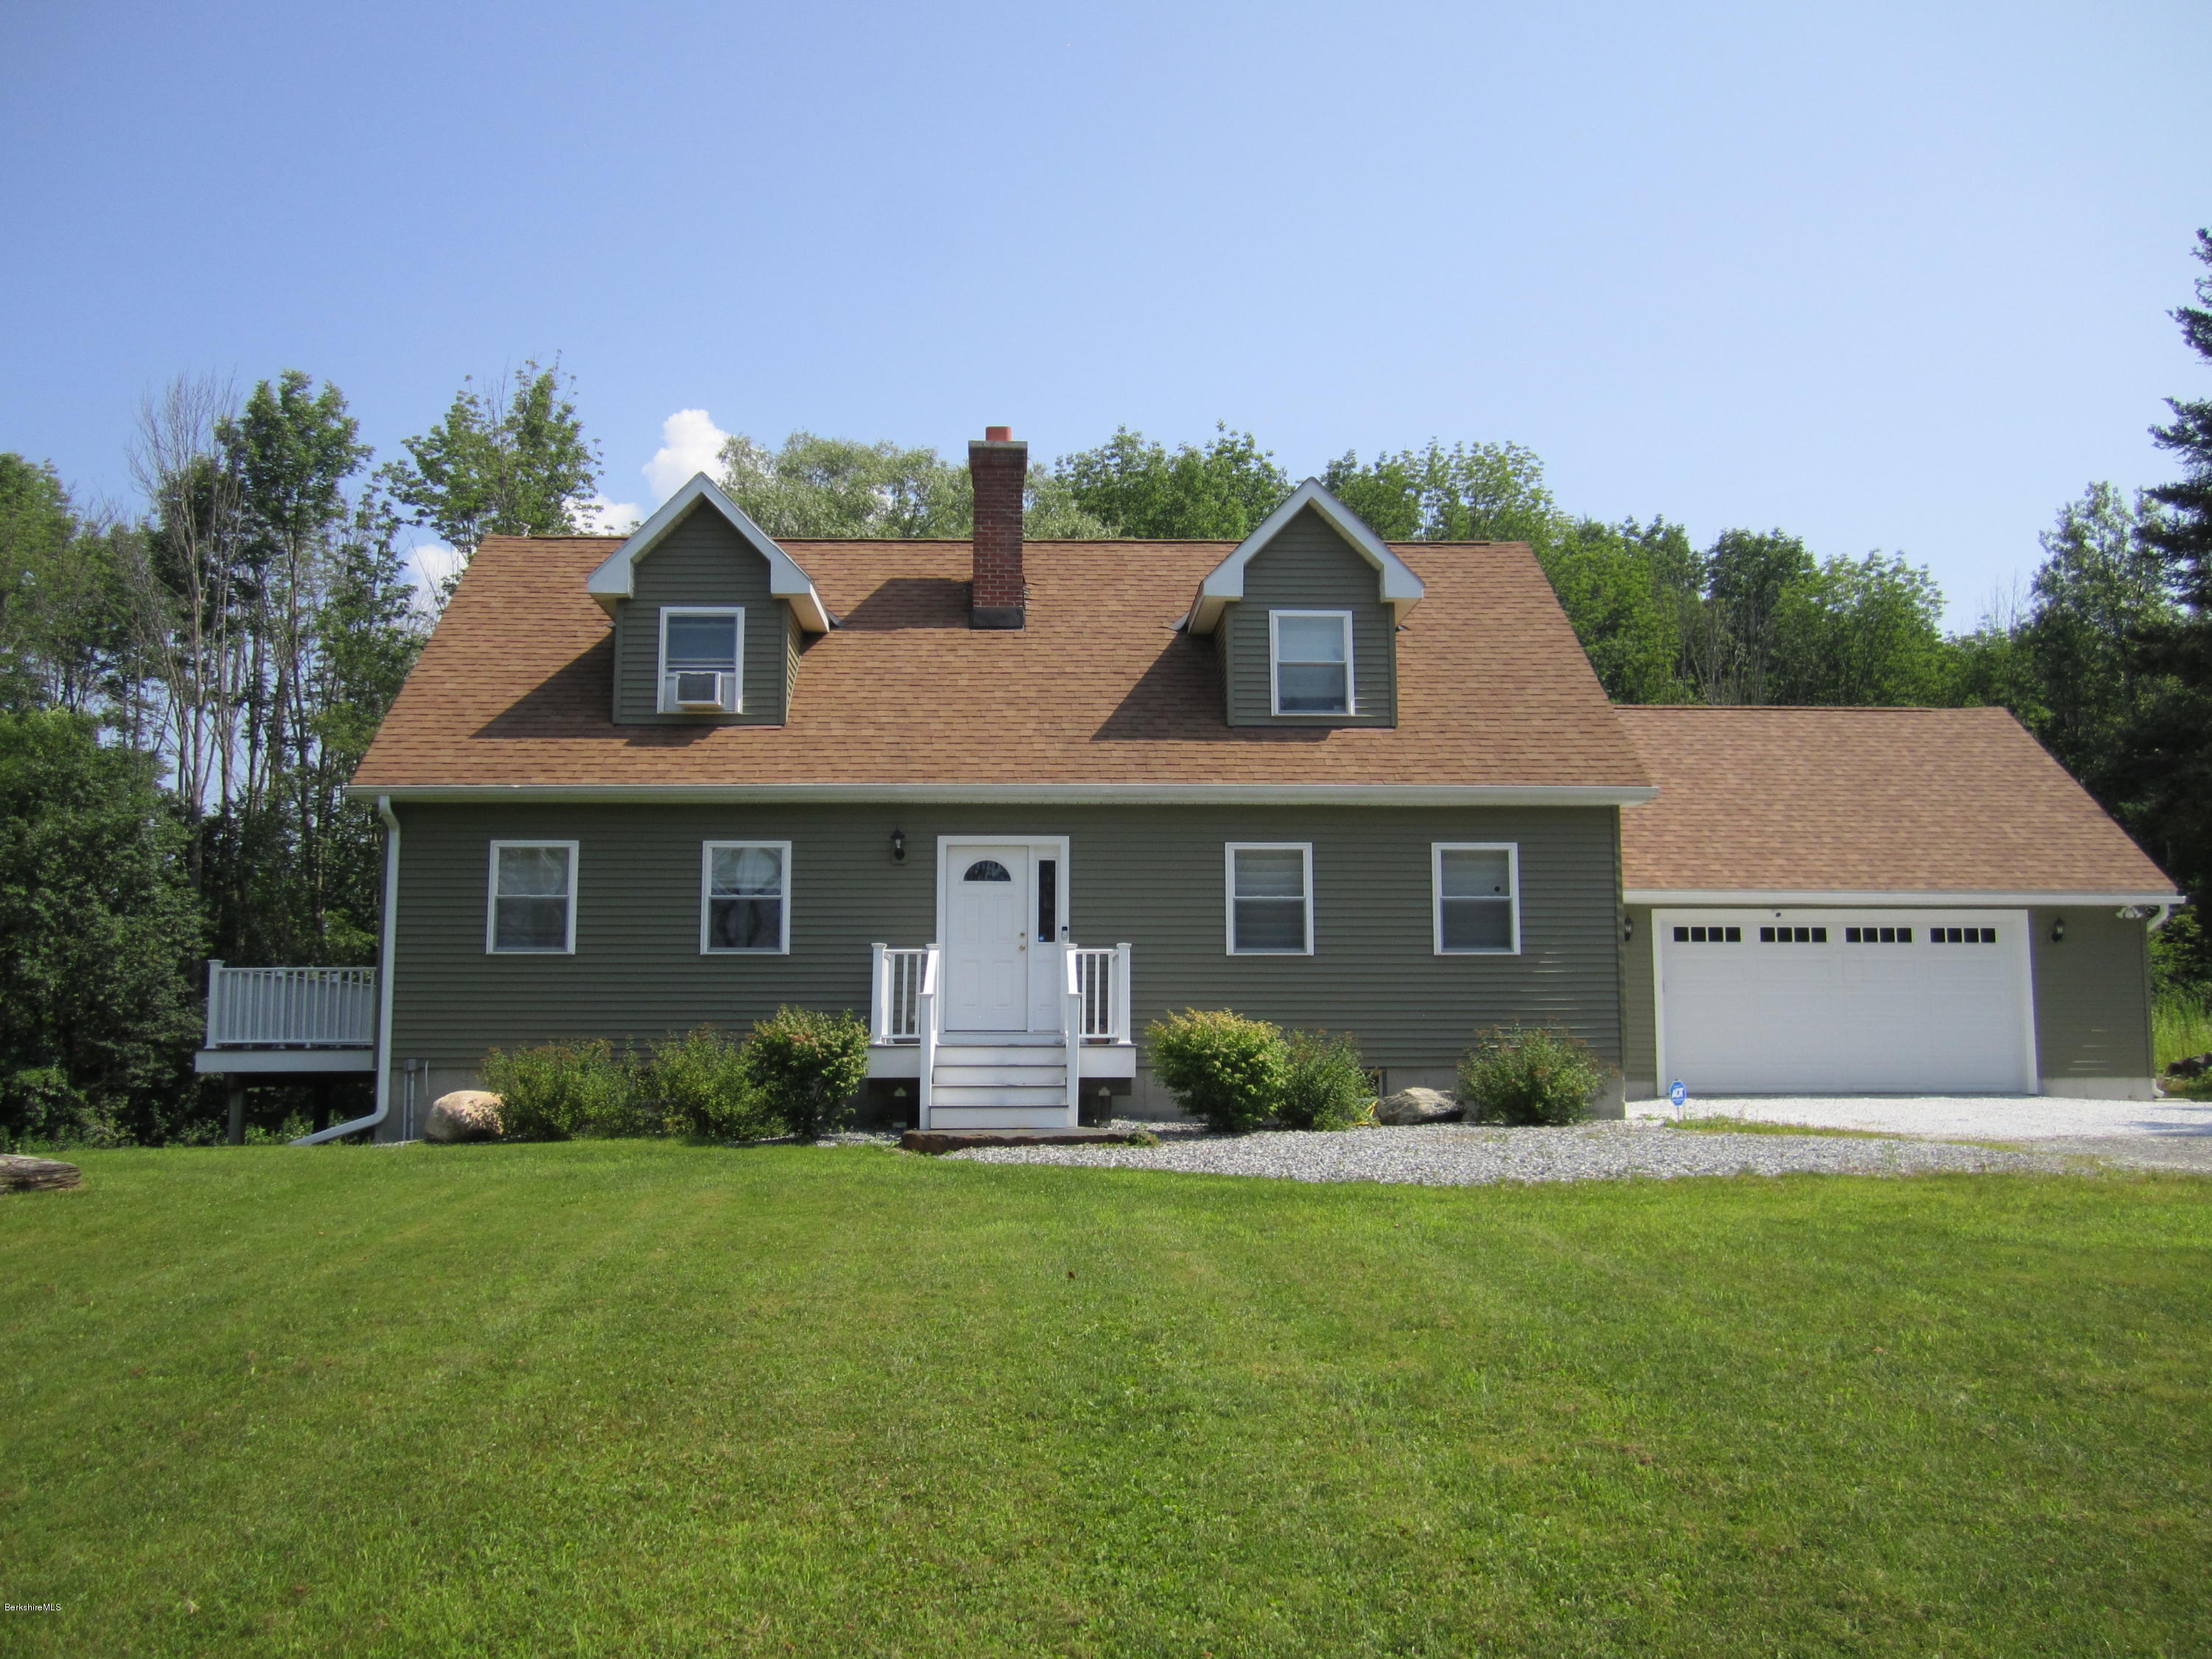 For Sale | Greylock Realty